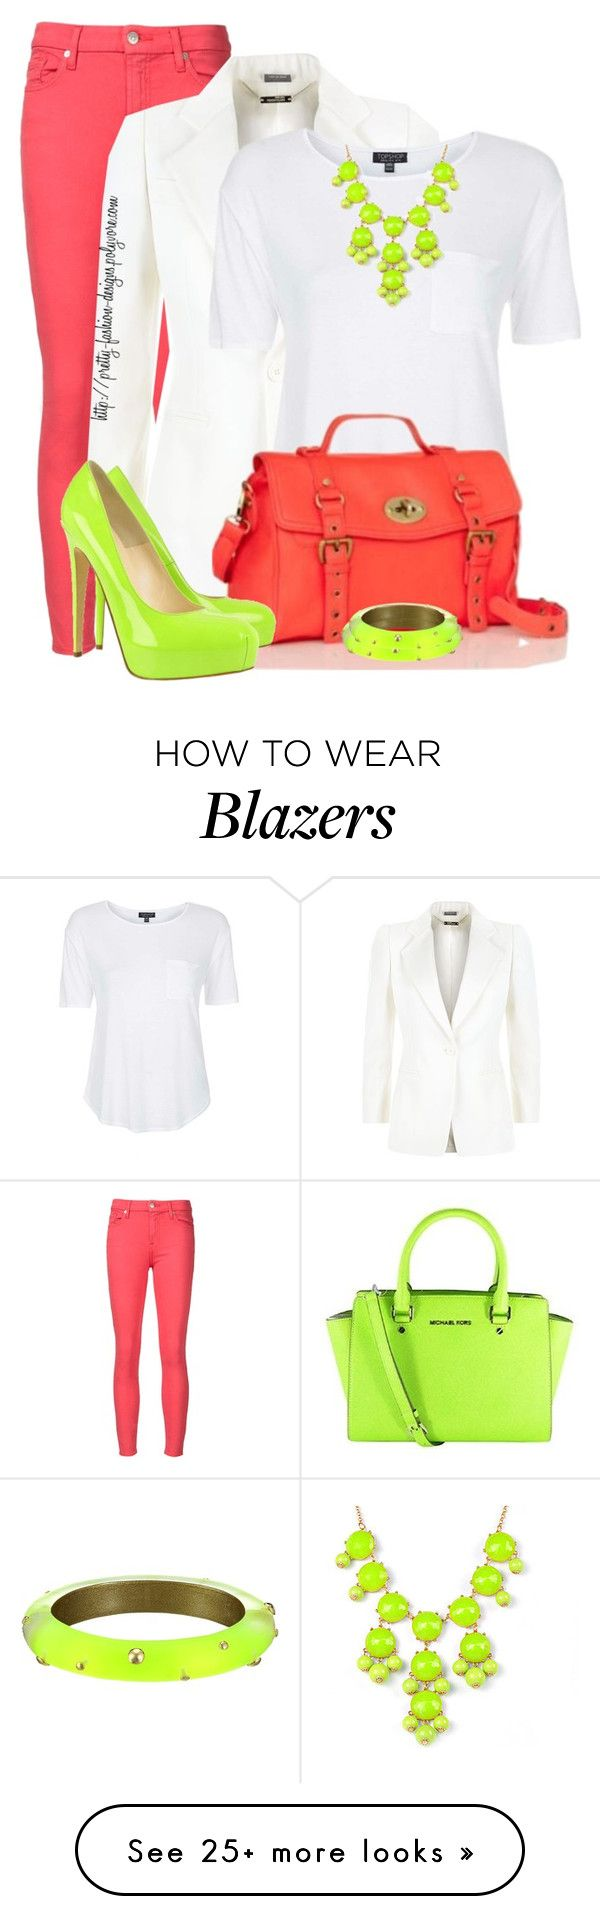 """""""~  Neon Color  ~"""" by pretty-fashion-designs on Polyvore featuring 7 For All Mankind, Alexander McQueen, Topshop, J.Crew, Michael Kors, Brian Atwood, Alexis Bittar, women's clothing, women and female"""